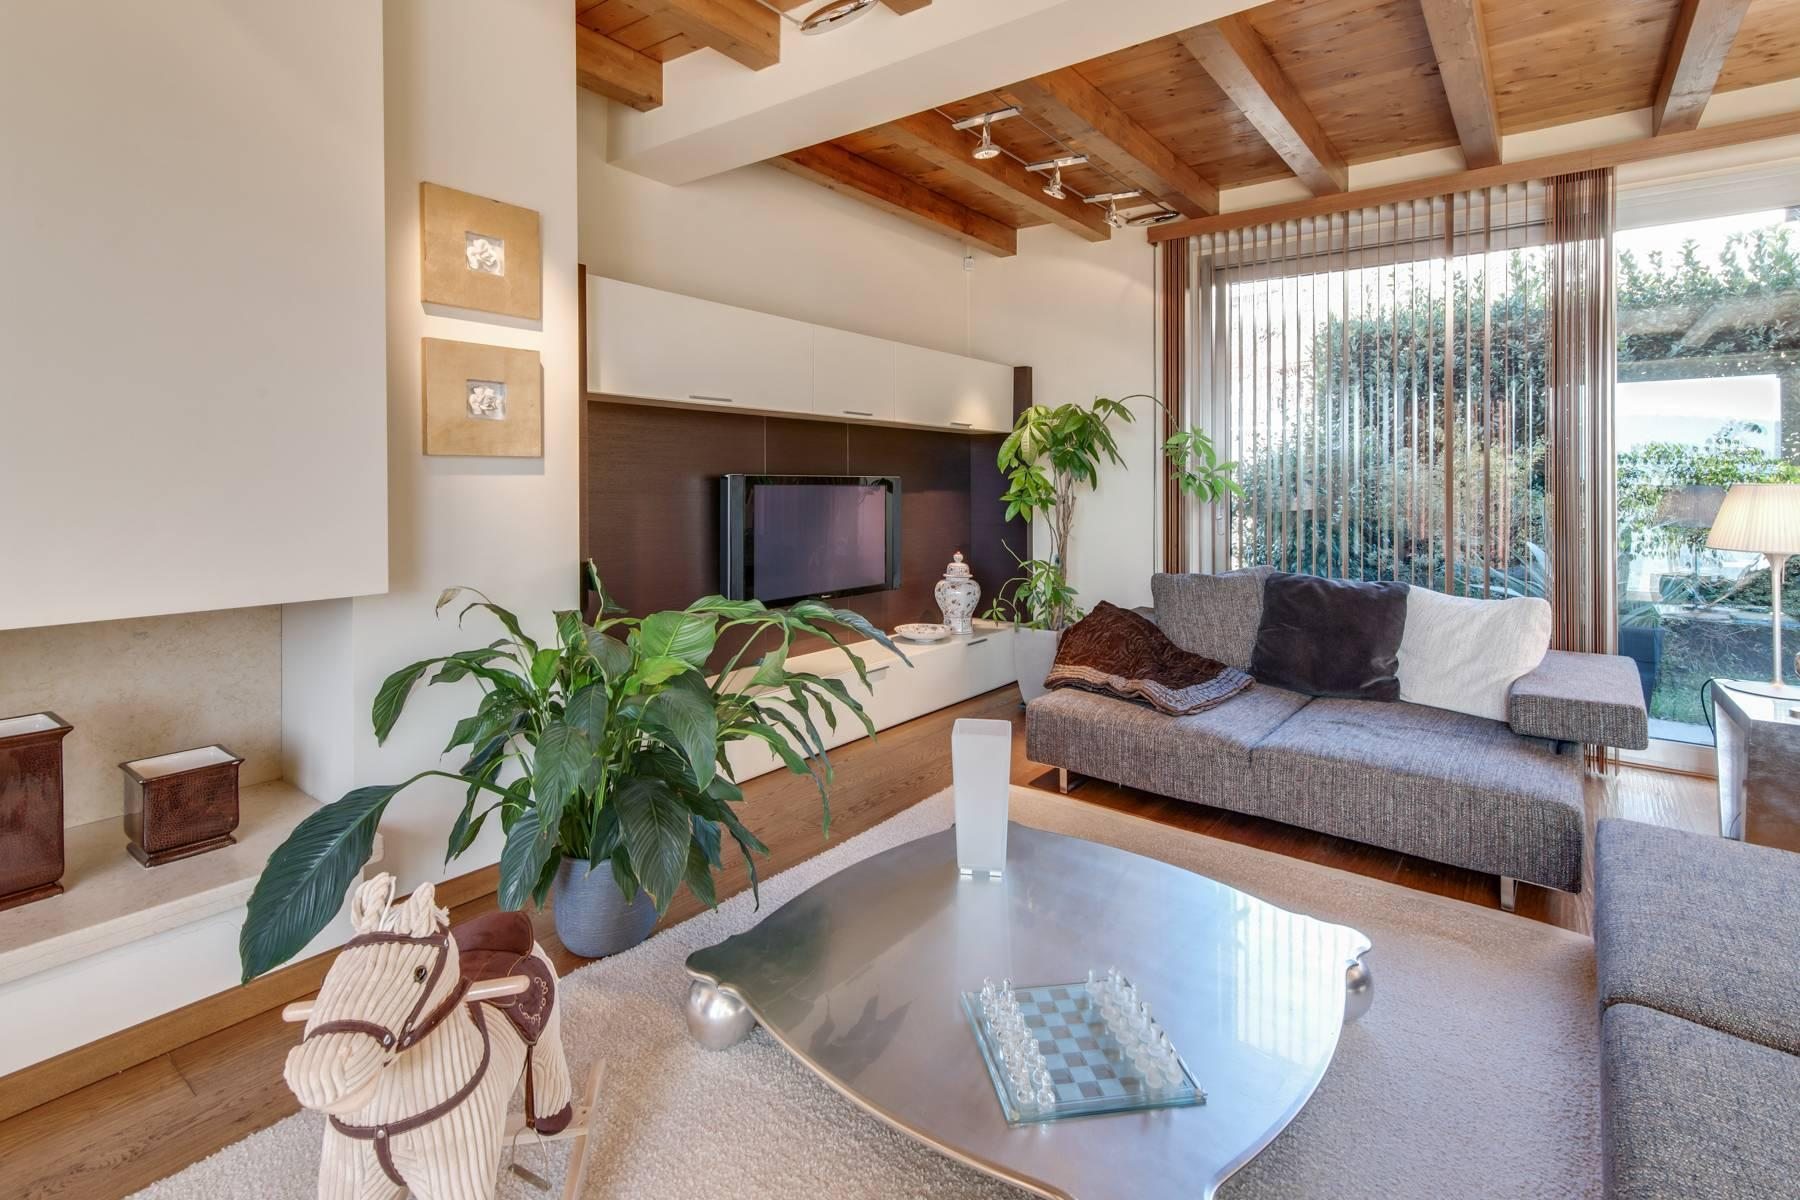 Modern villa a few minutes away from Bergamo - 1